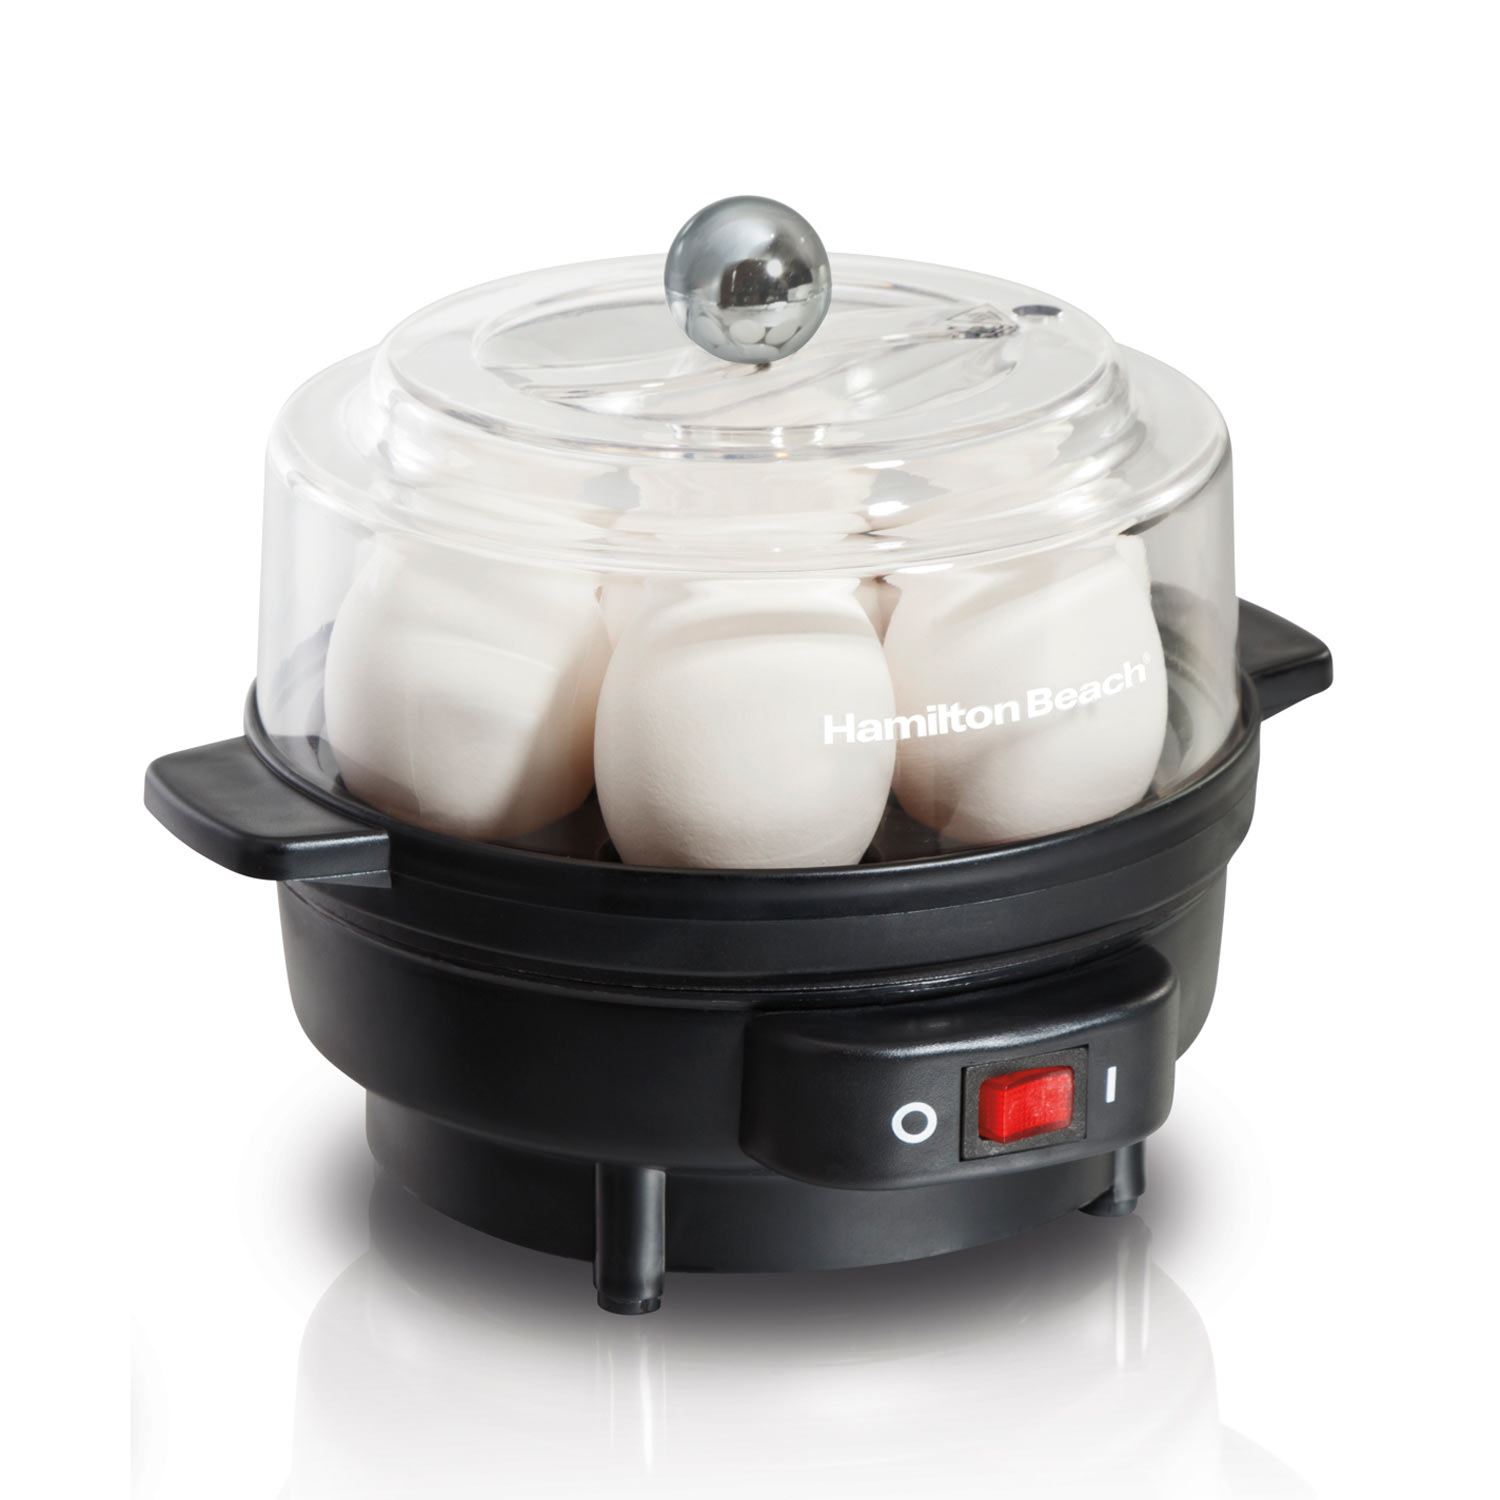 Hamilton Beach Egg Cooker with Built-In Timer, Poaching Tray (25500)